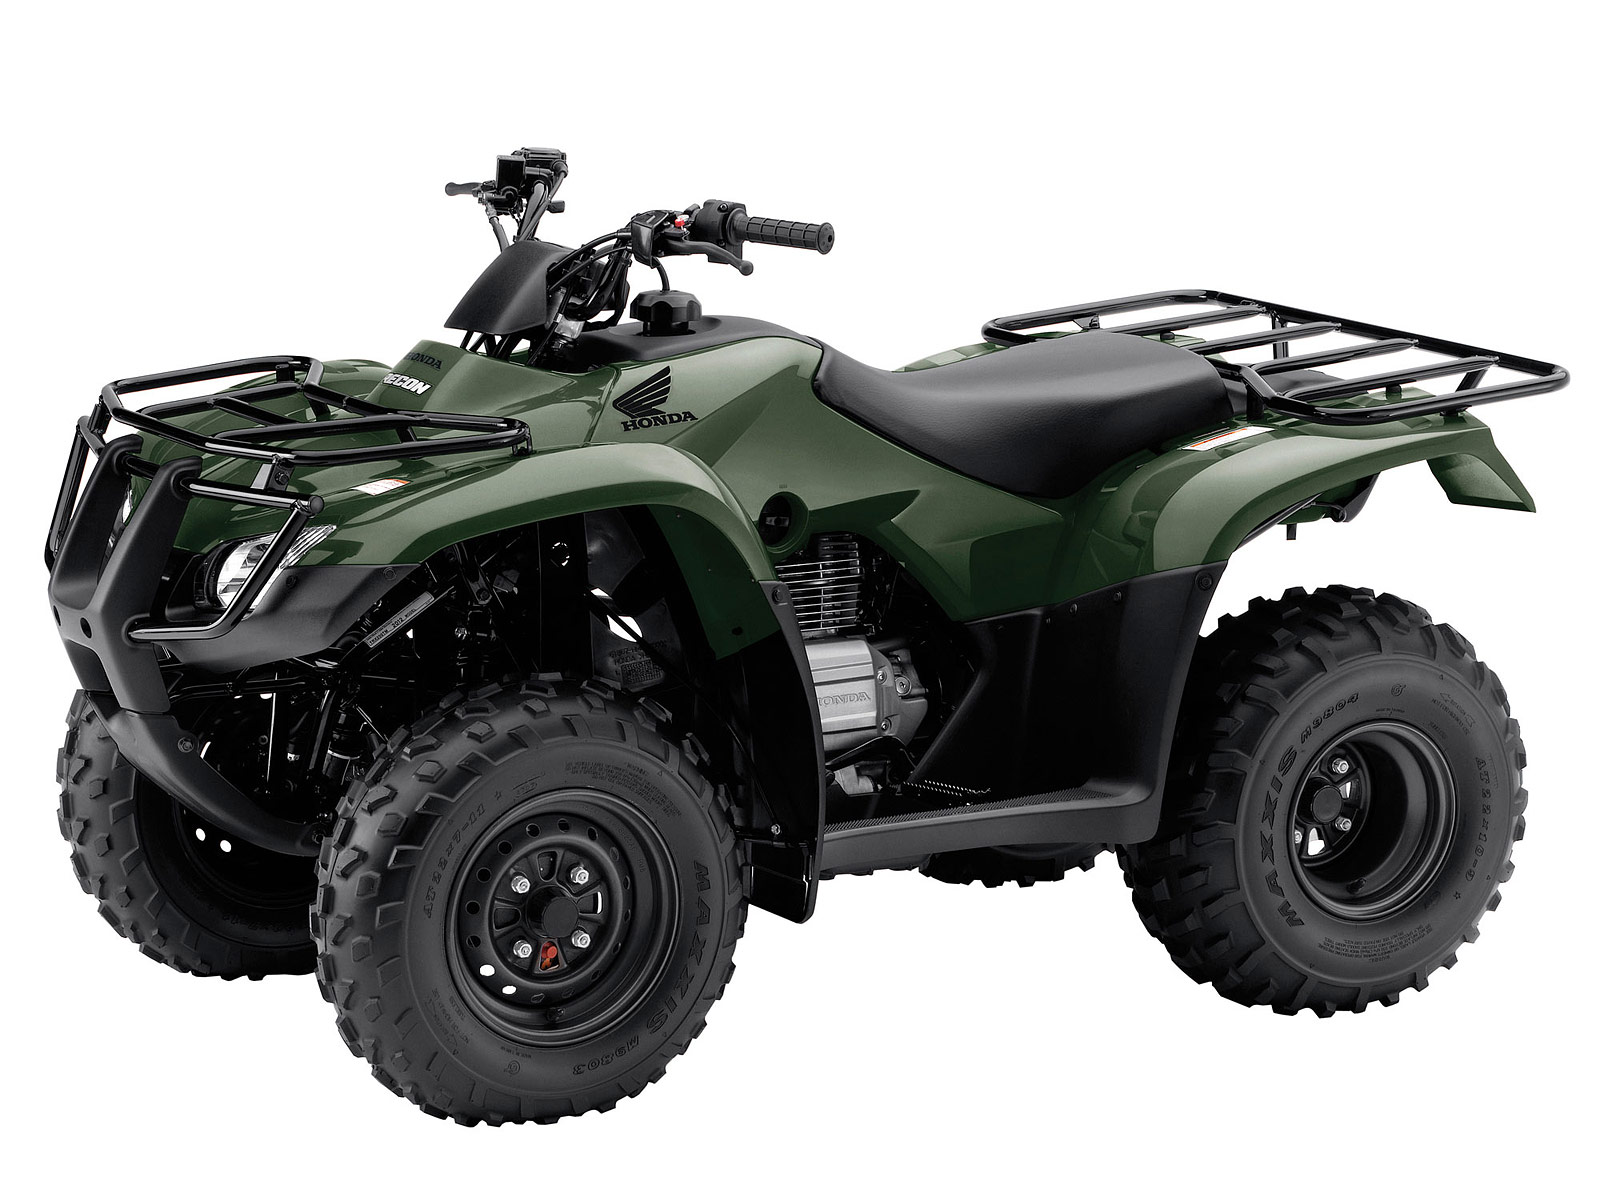 2013 atv pictures honda fourtrax recon es trx250te rh atv pictures blogspot  com